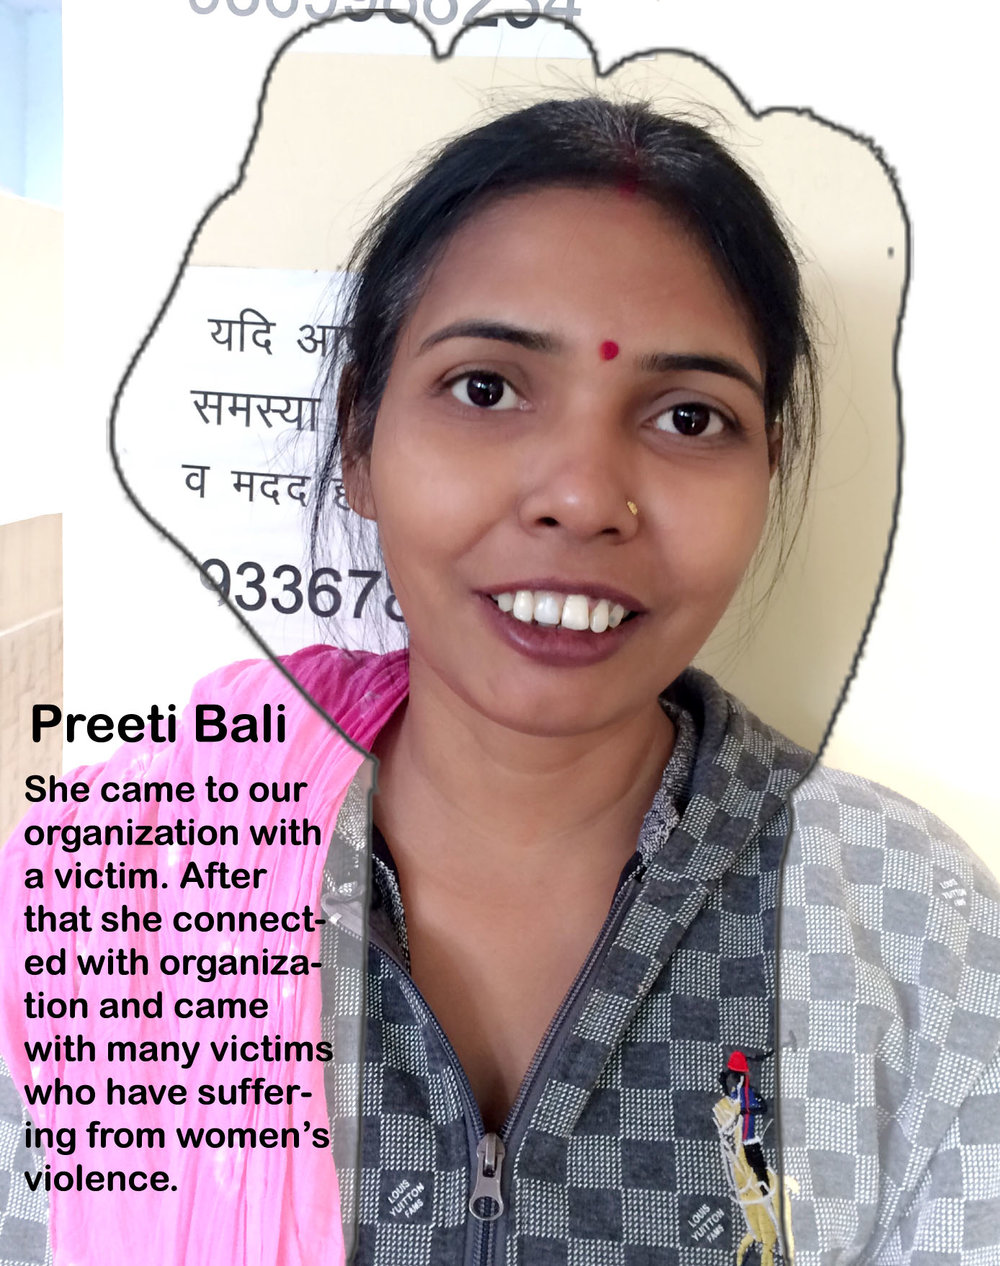 Preeti bali women human right defender--.jpg